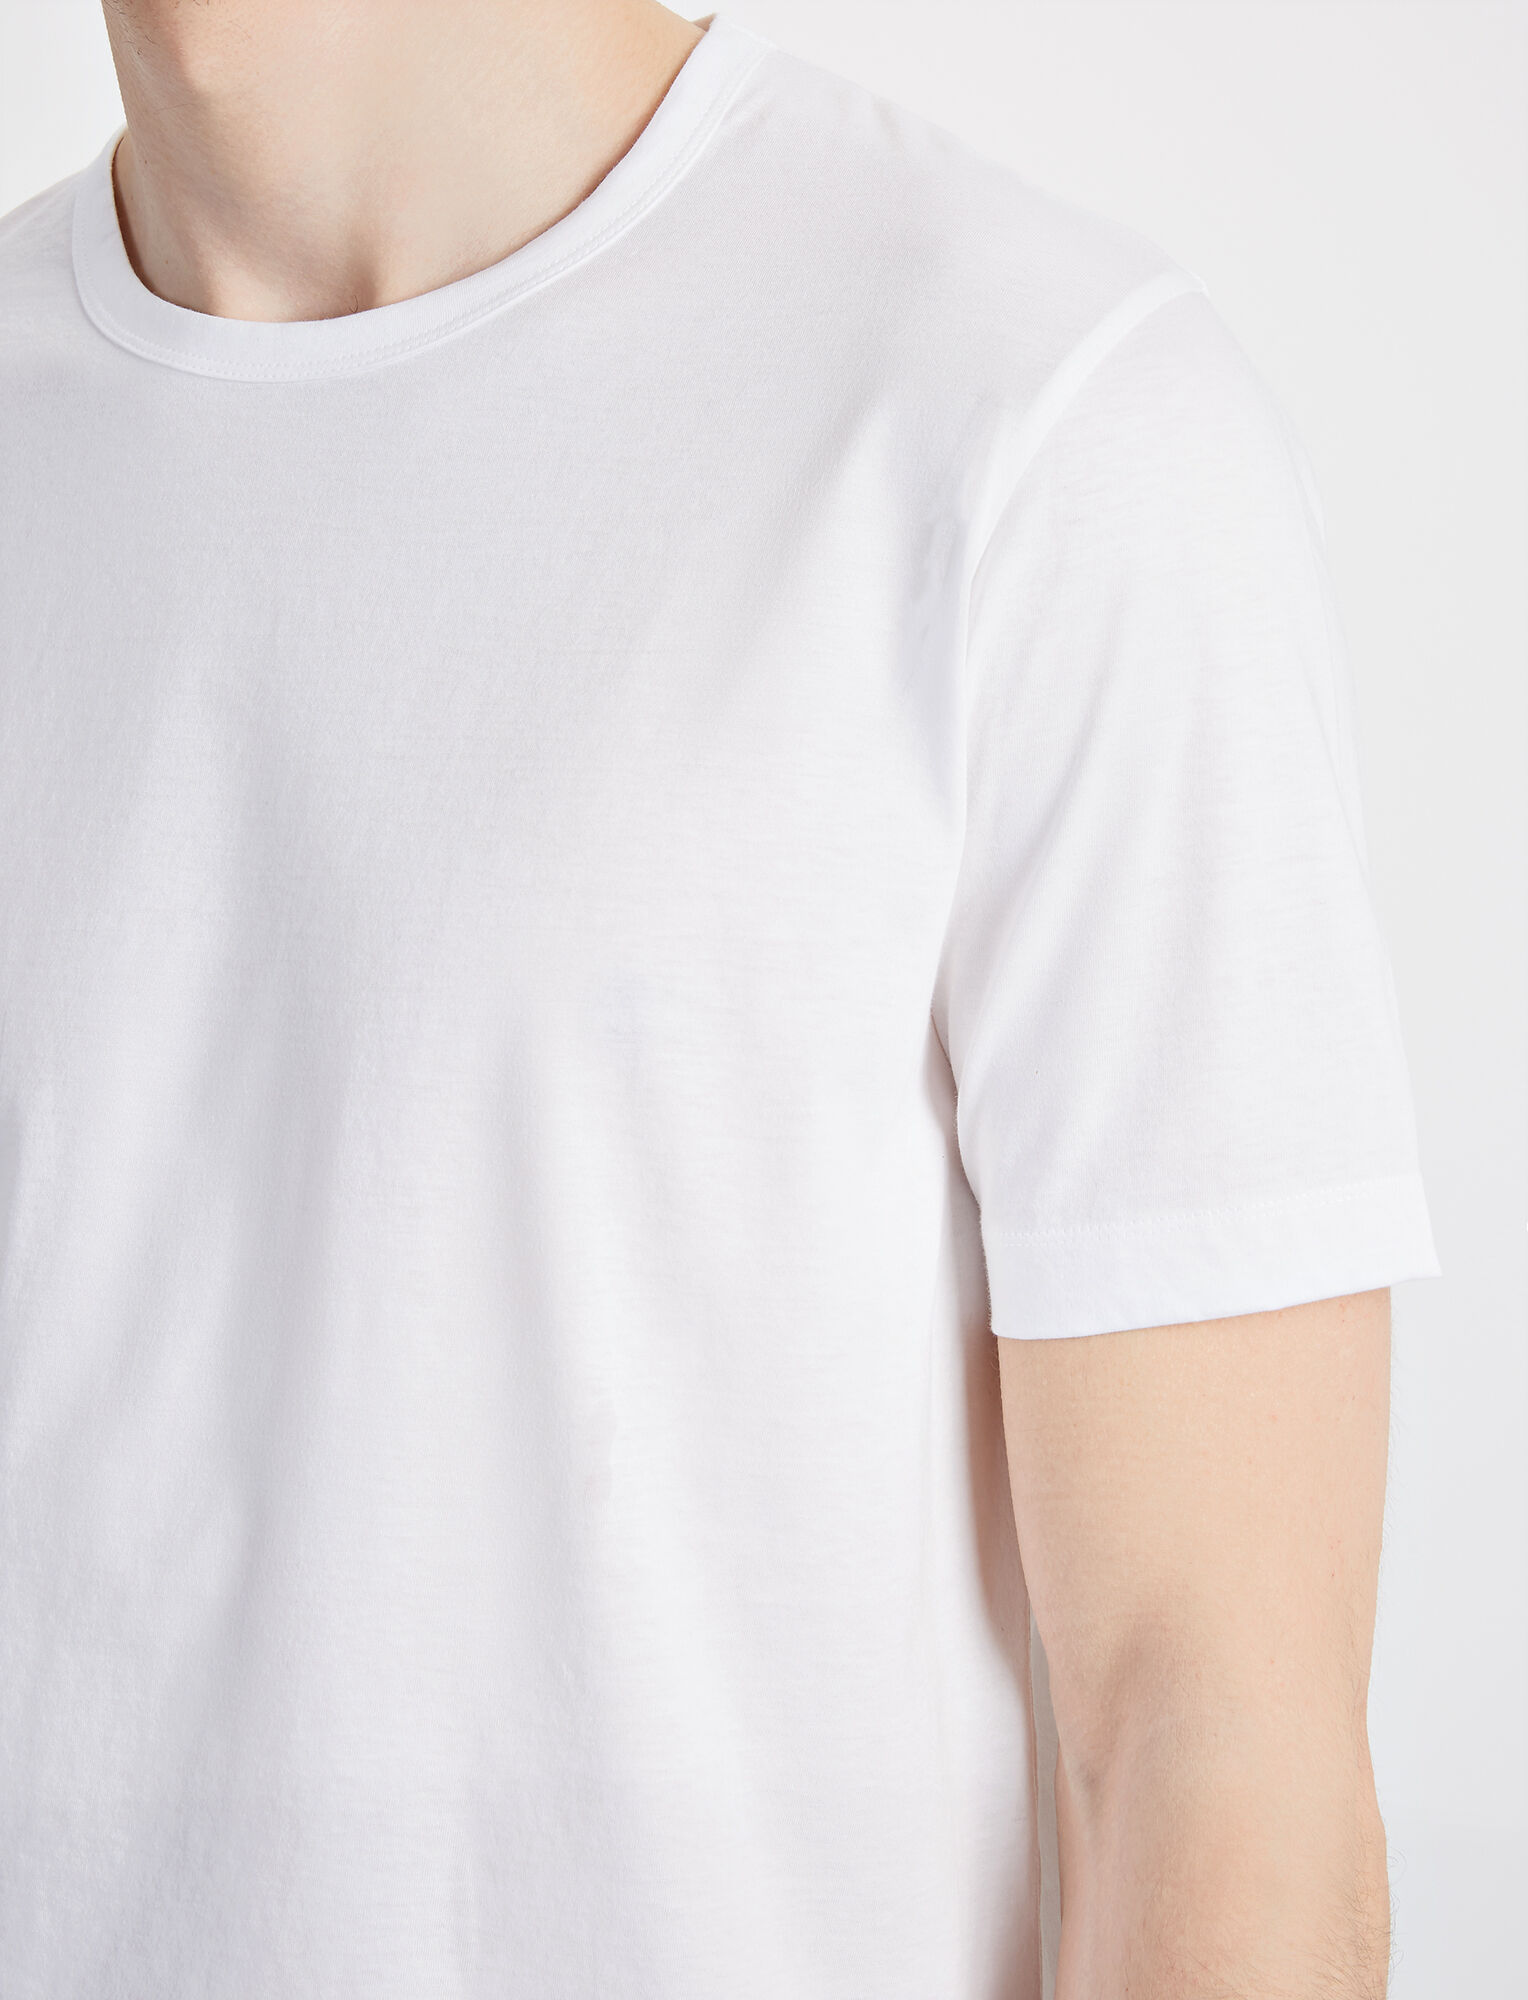 Joseph, Mercerized Jersey Tee, in WHITE